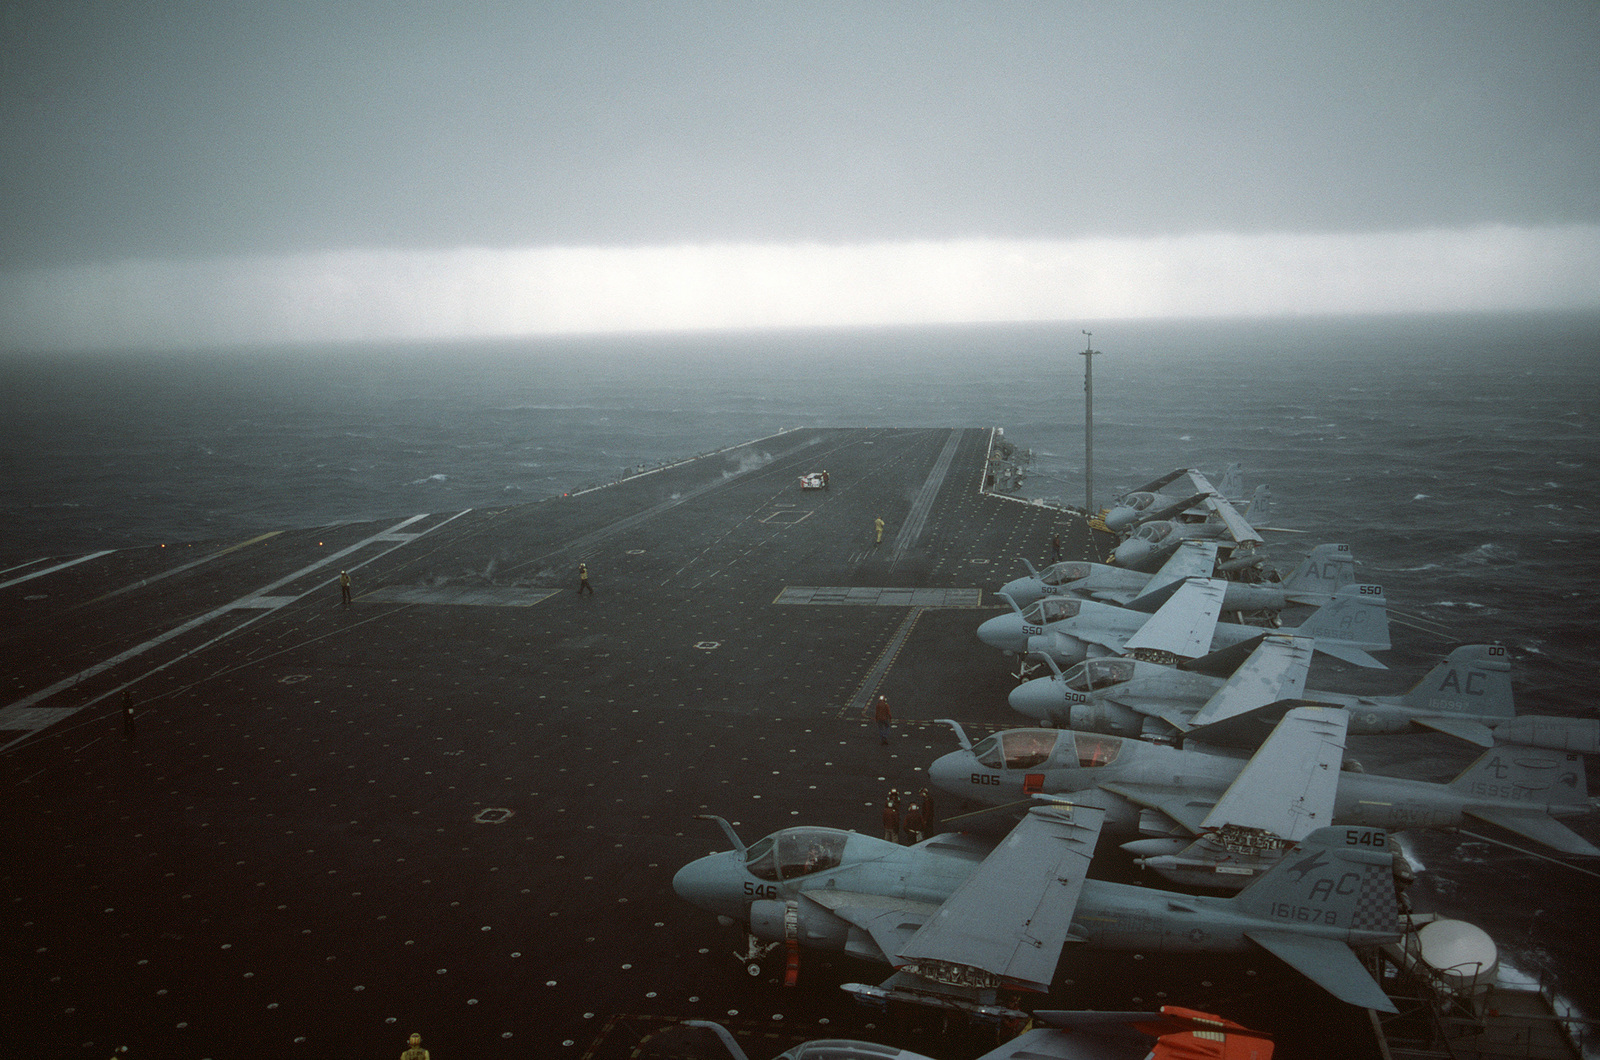 A storm approaches the aircraft carrier USS JOHN F. KENNEDY (CV 67). Parked on the flight deck are several A-6E Intruder aircraft and an EA-6B Prowler aircraft